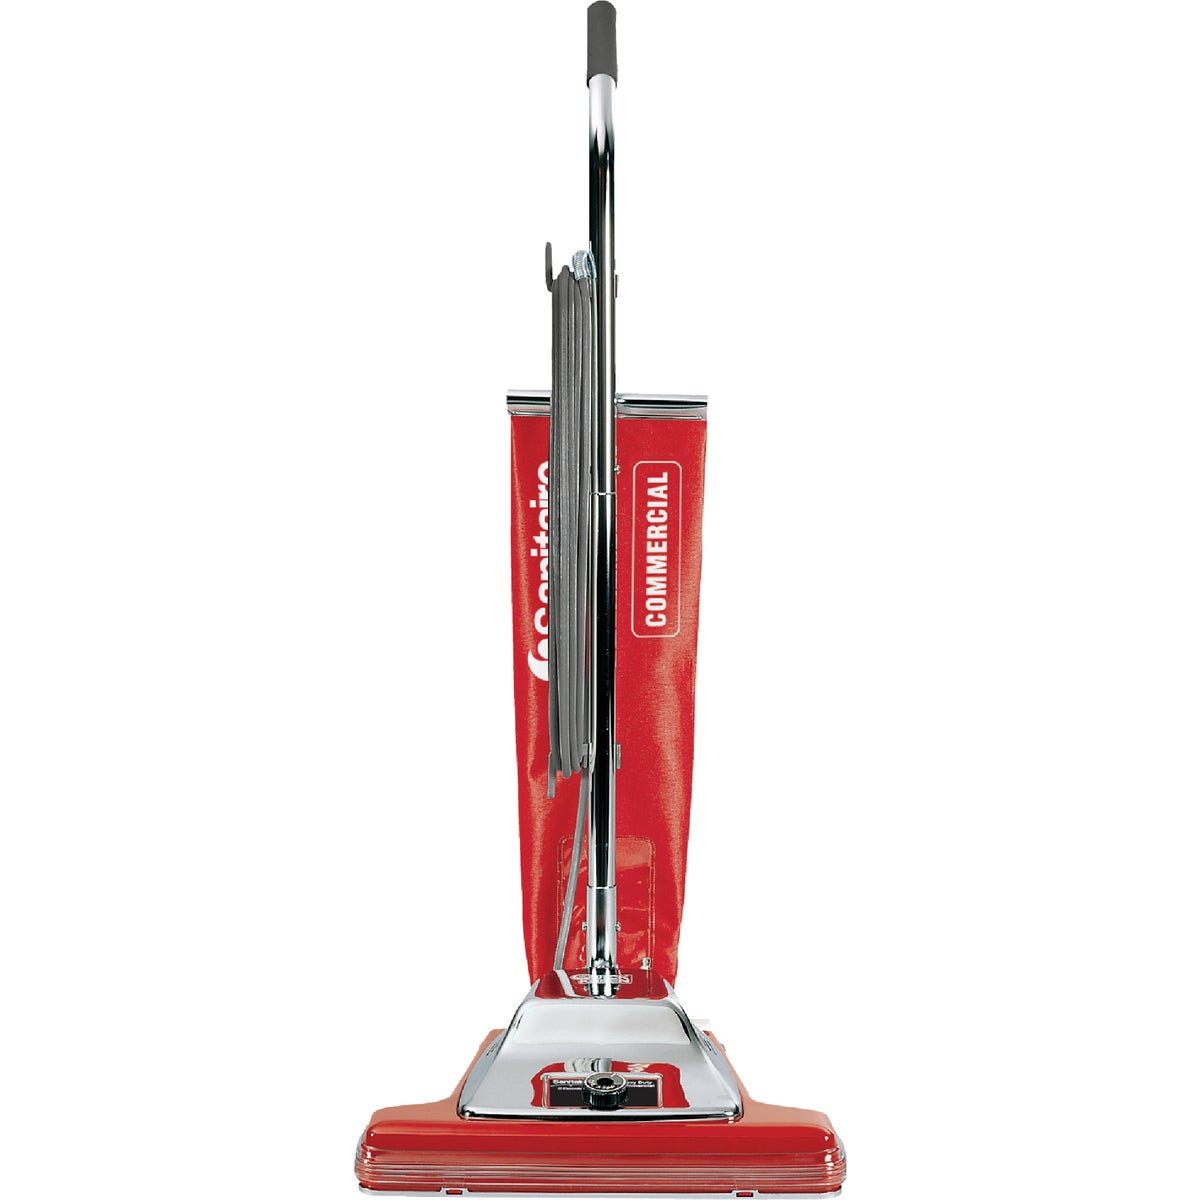 Sanitaire By Electrolux 16 In. Commercial Upright Vacuum Cleaner, SC899F